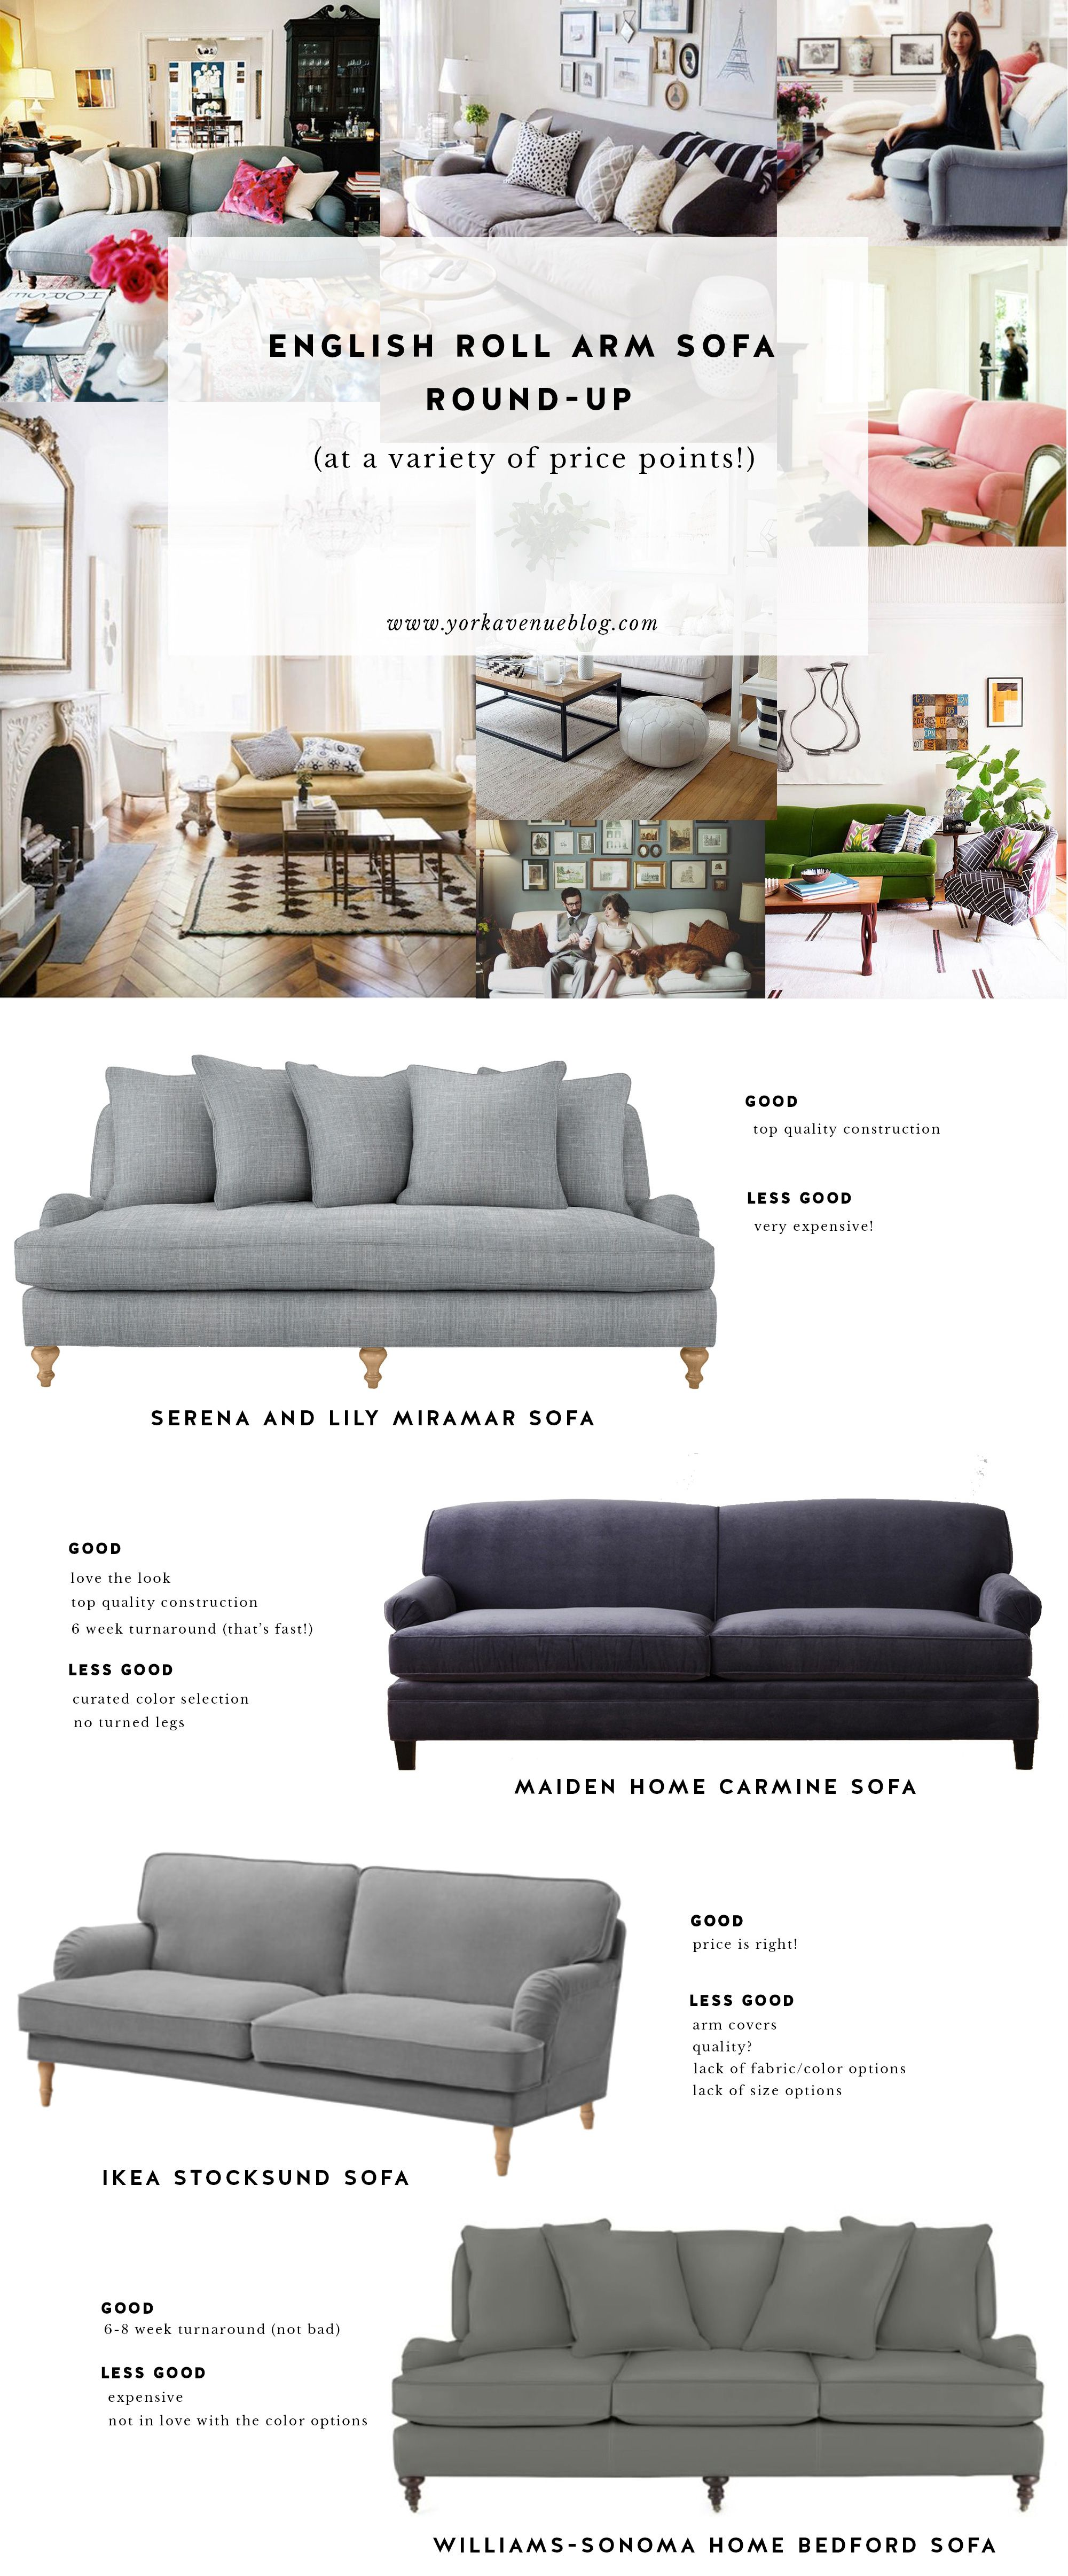 A Comparison Of Different English Roll Arm Sofas, Inspired By Jenna Lyons  Sofa In